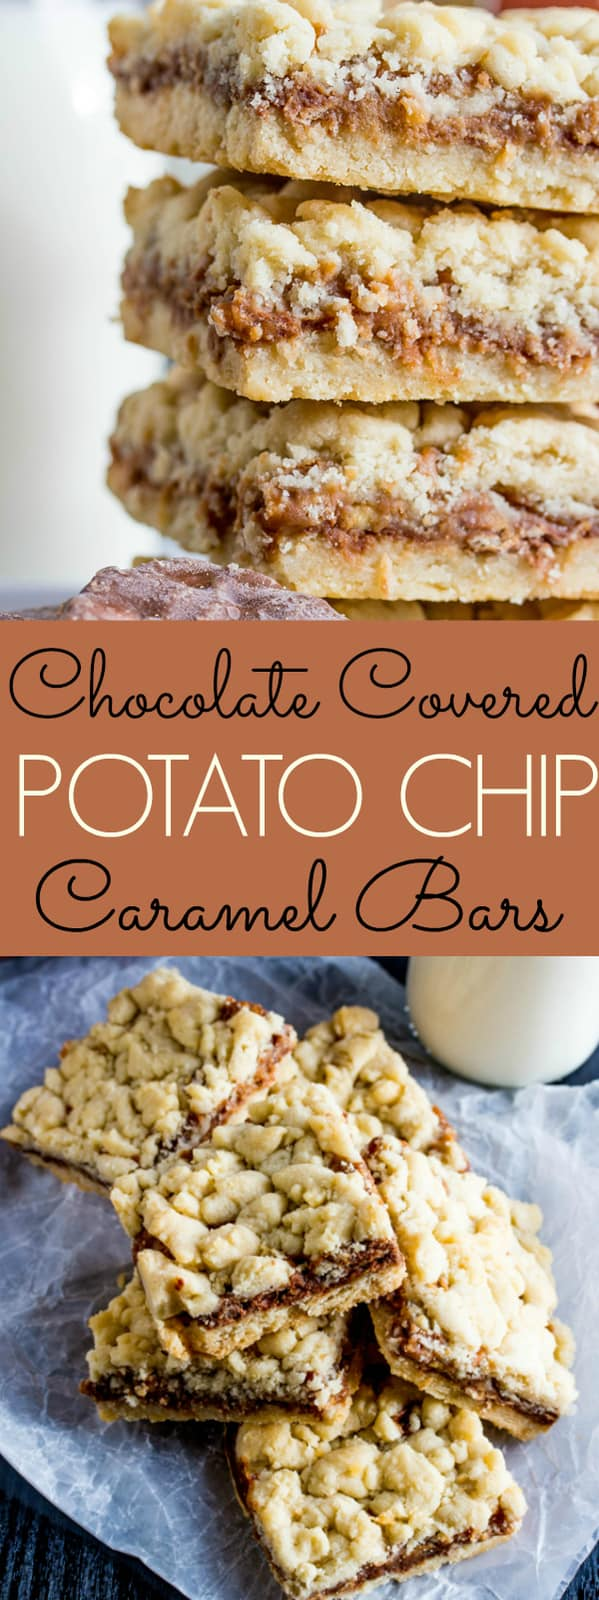 Chocolate Covered Potato Chip Caramel Bars